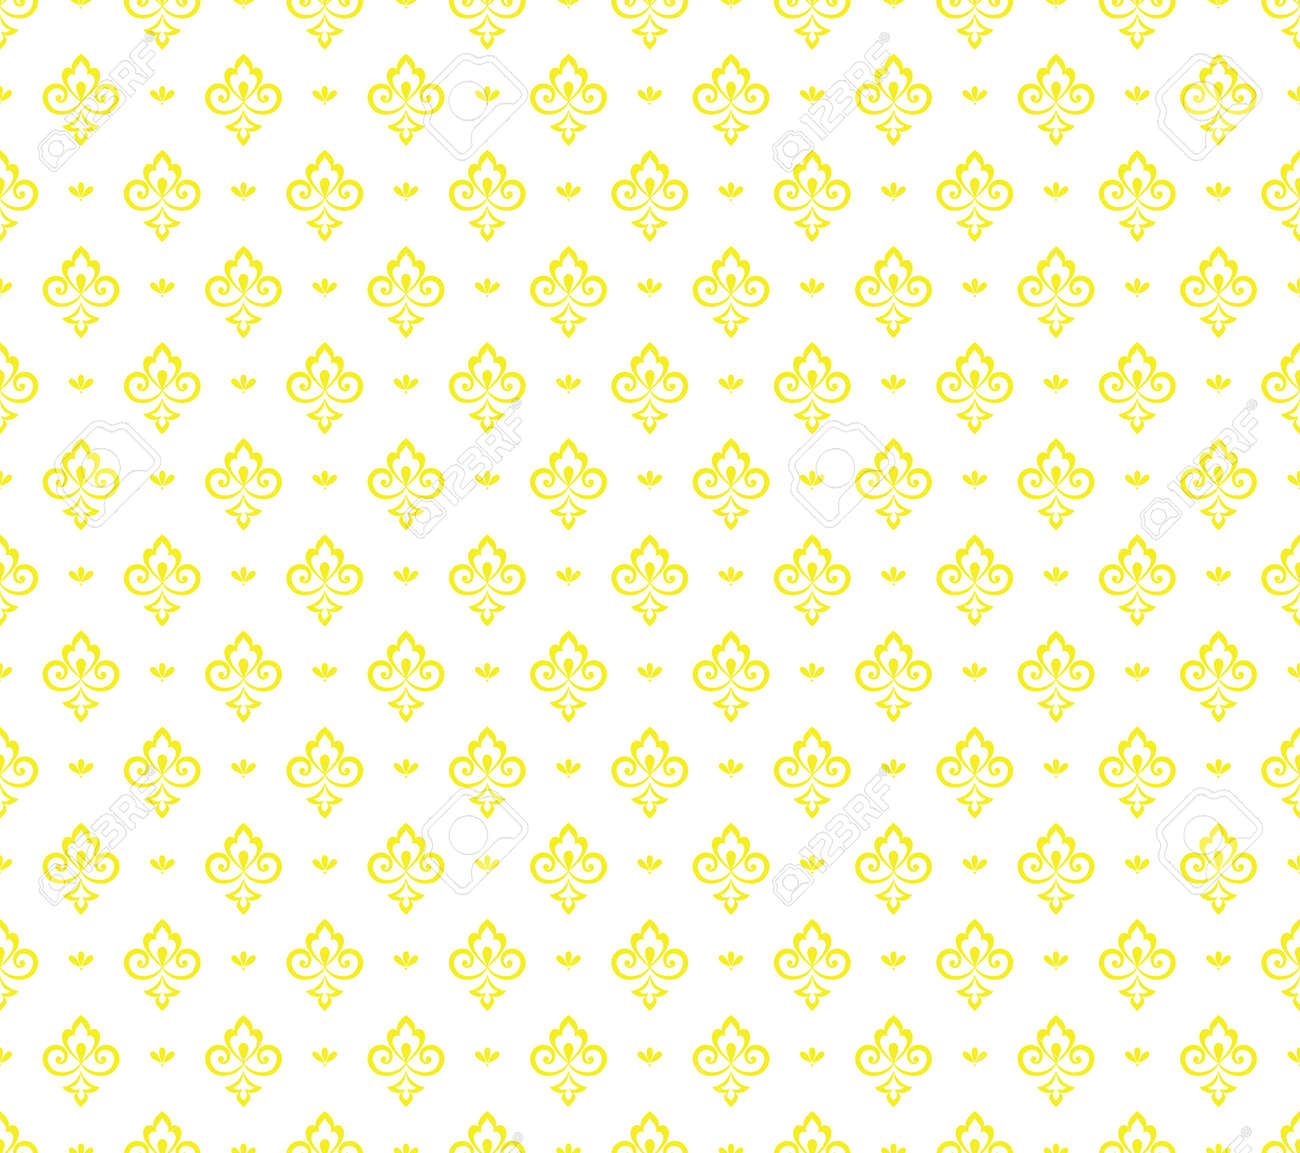 Flower geometric pattern. Seamless vector background. White and yellow ornament - 169878868